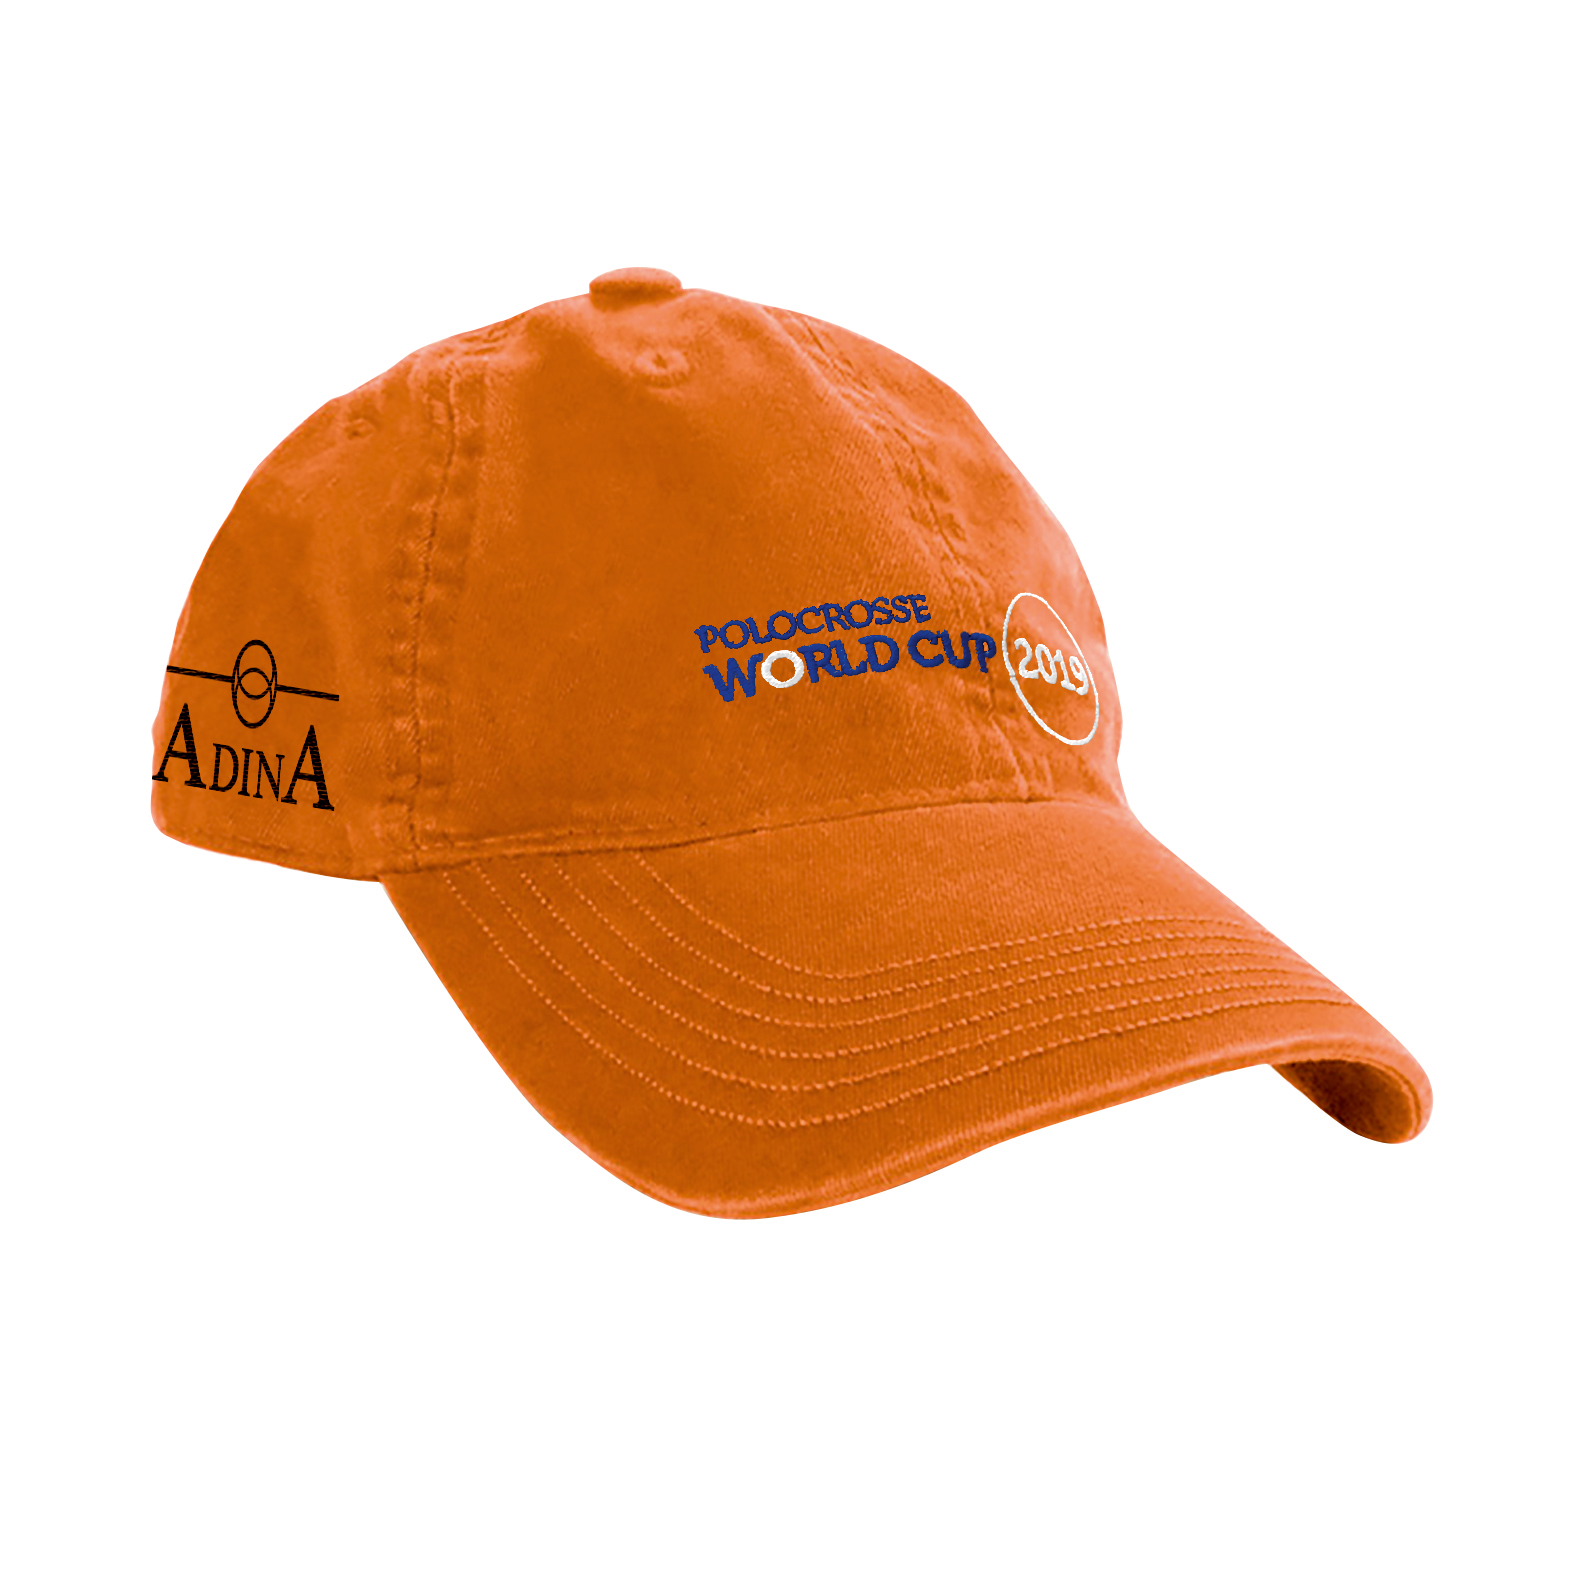 ORANGE ENZJME WASHED BASEBALL CAP-1.png